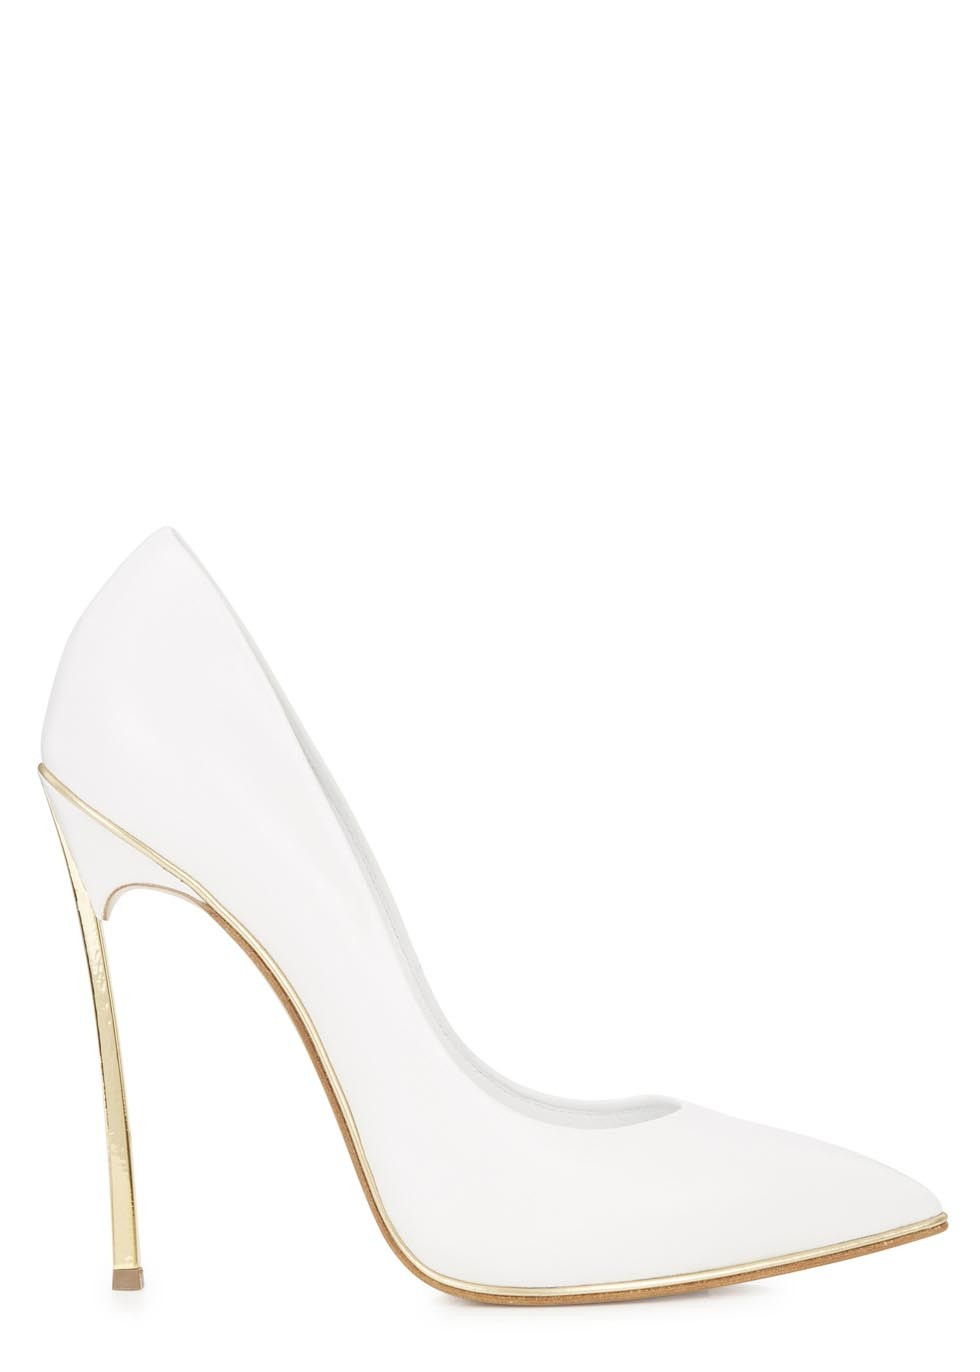 Blade white pointed leather pumps  - Women